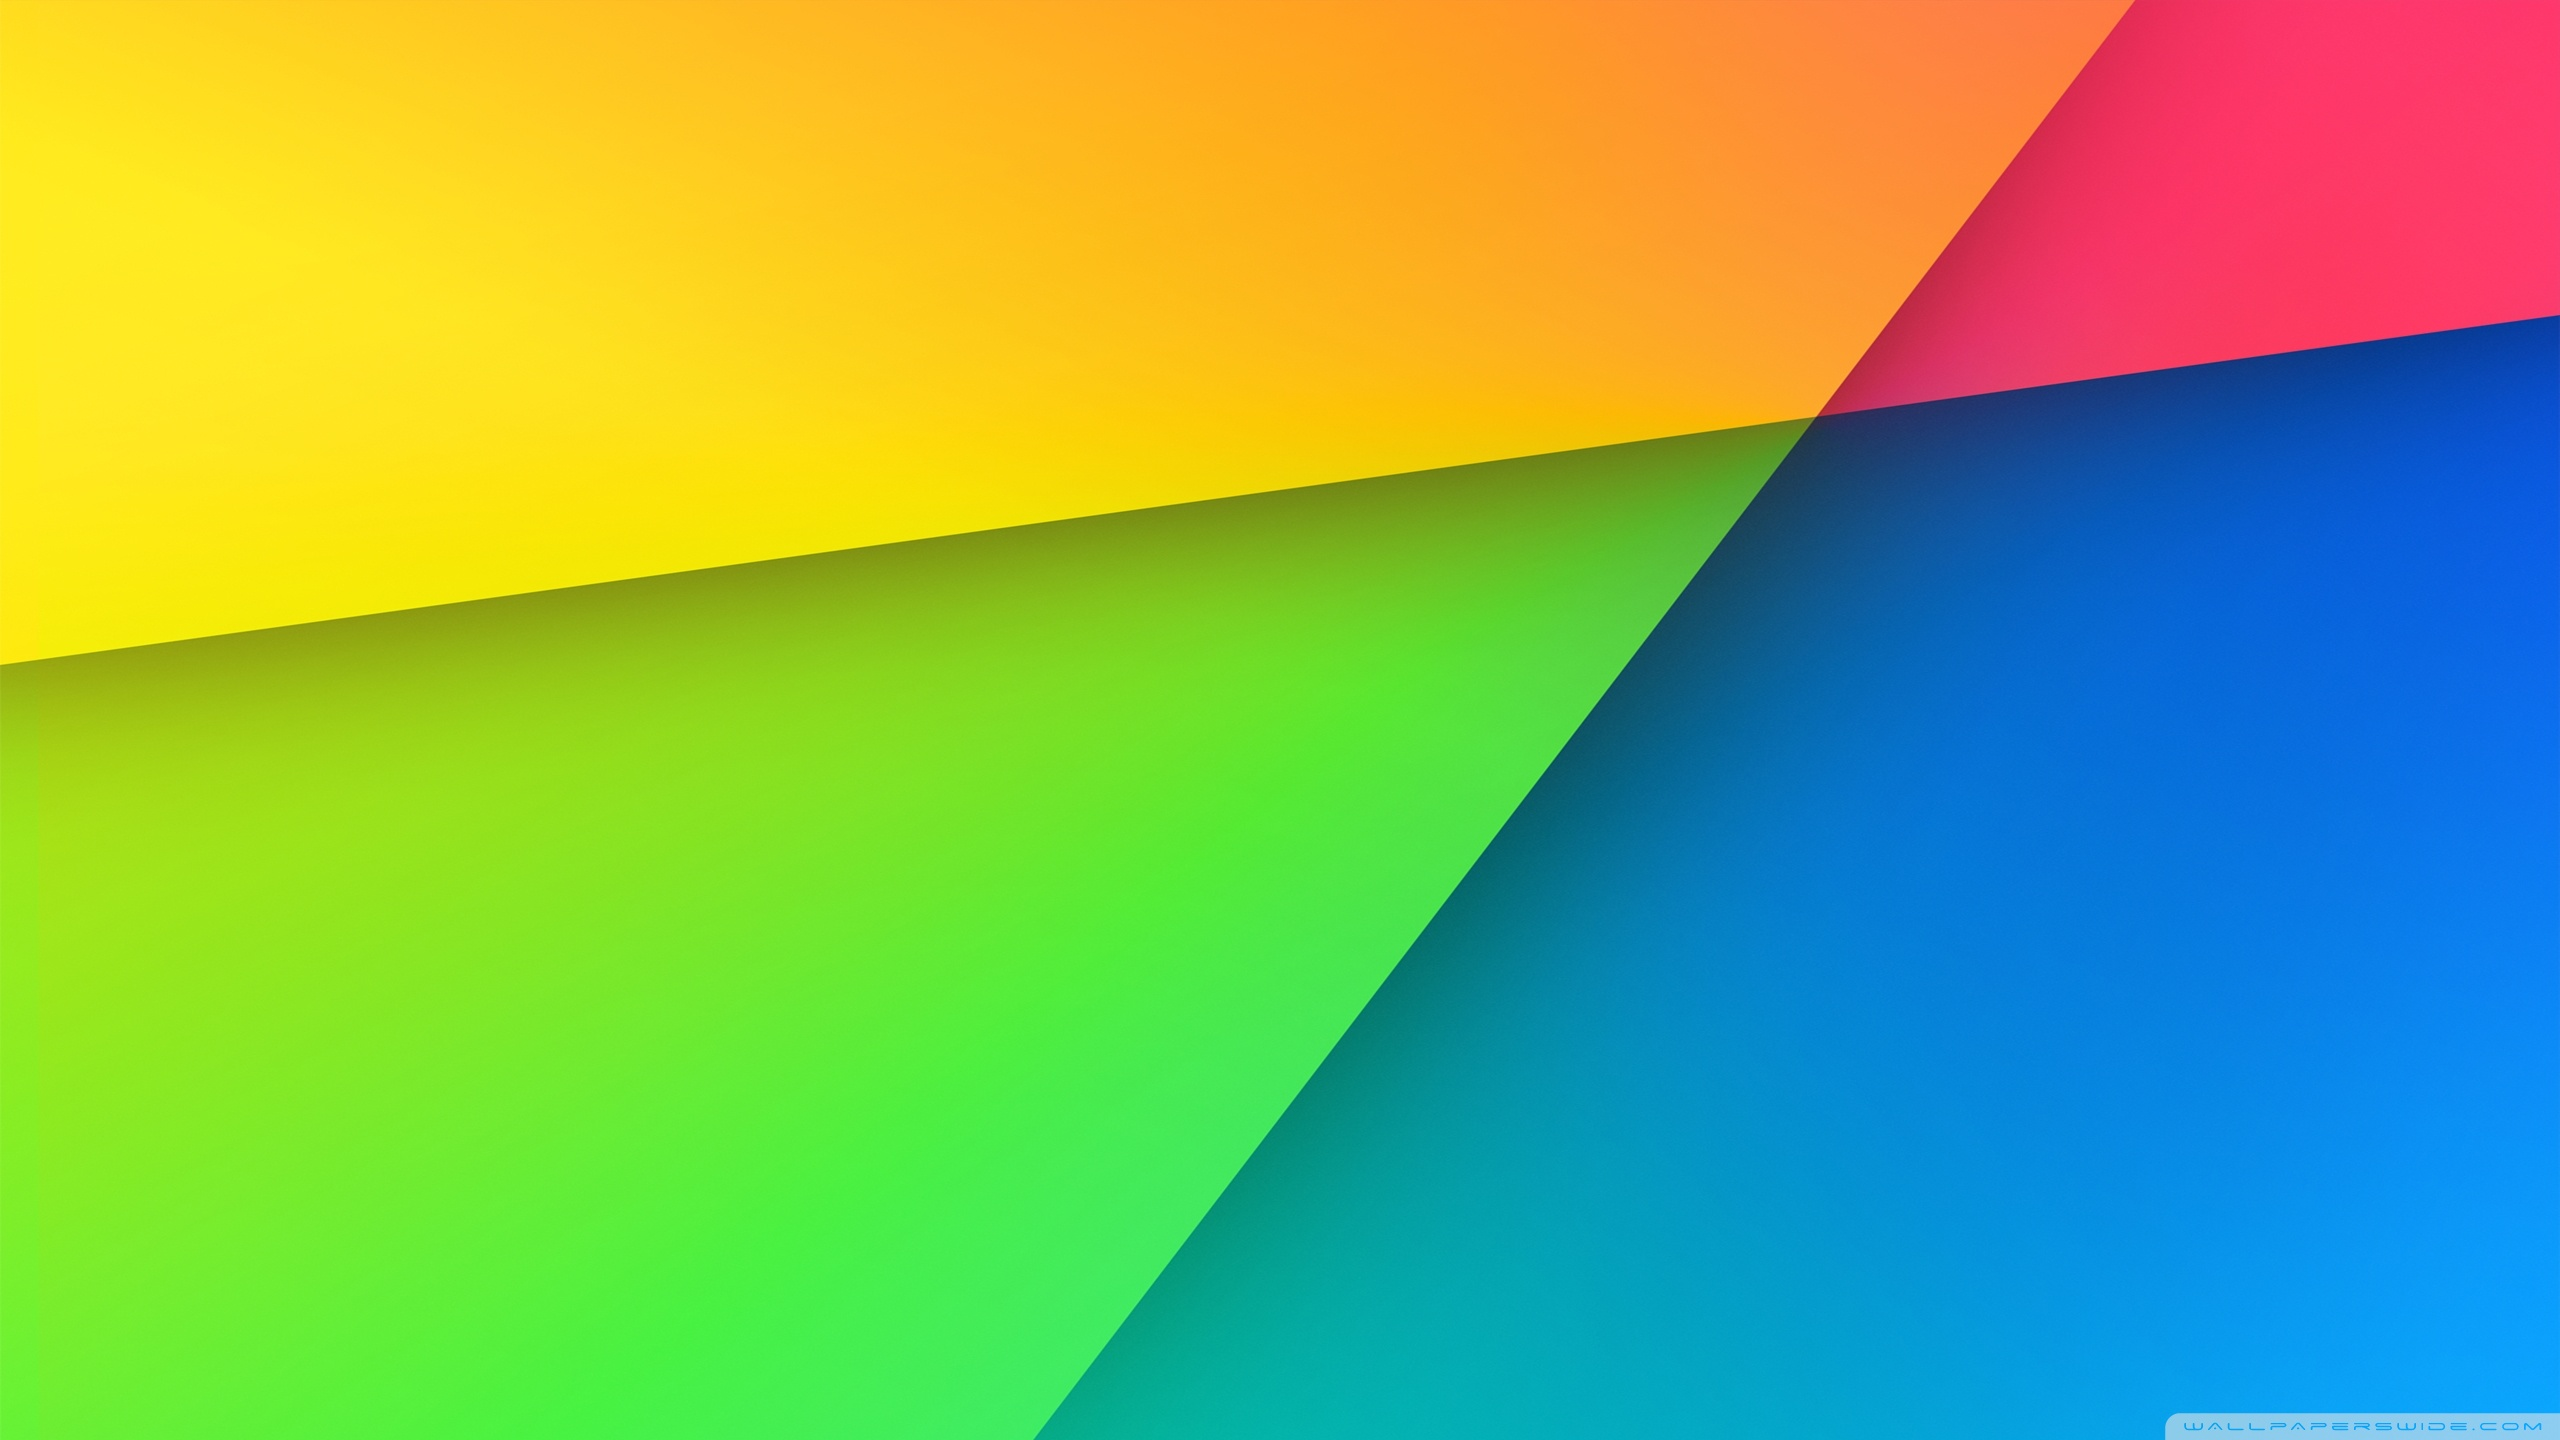 Google Nexus HD Wallpaper